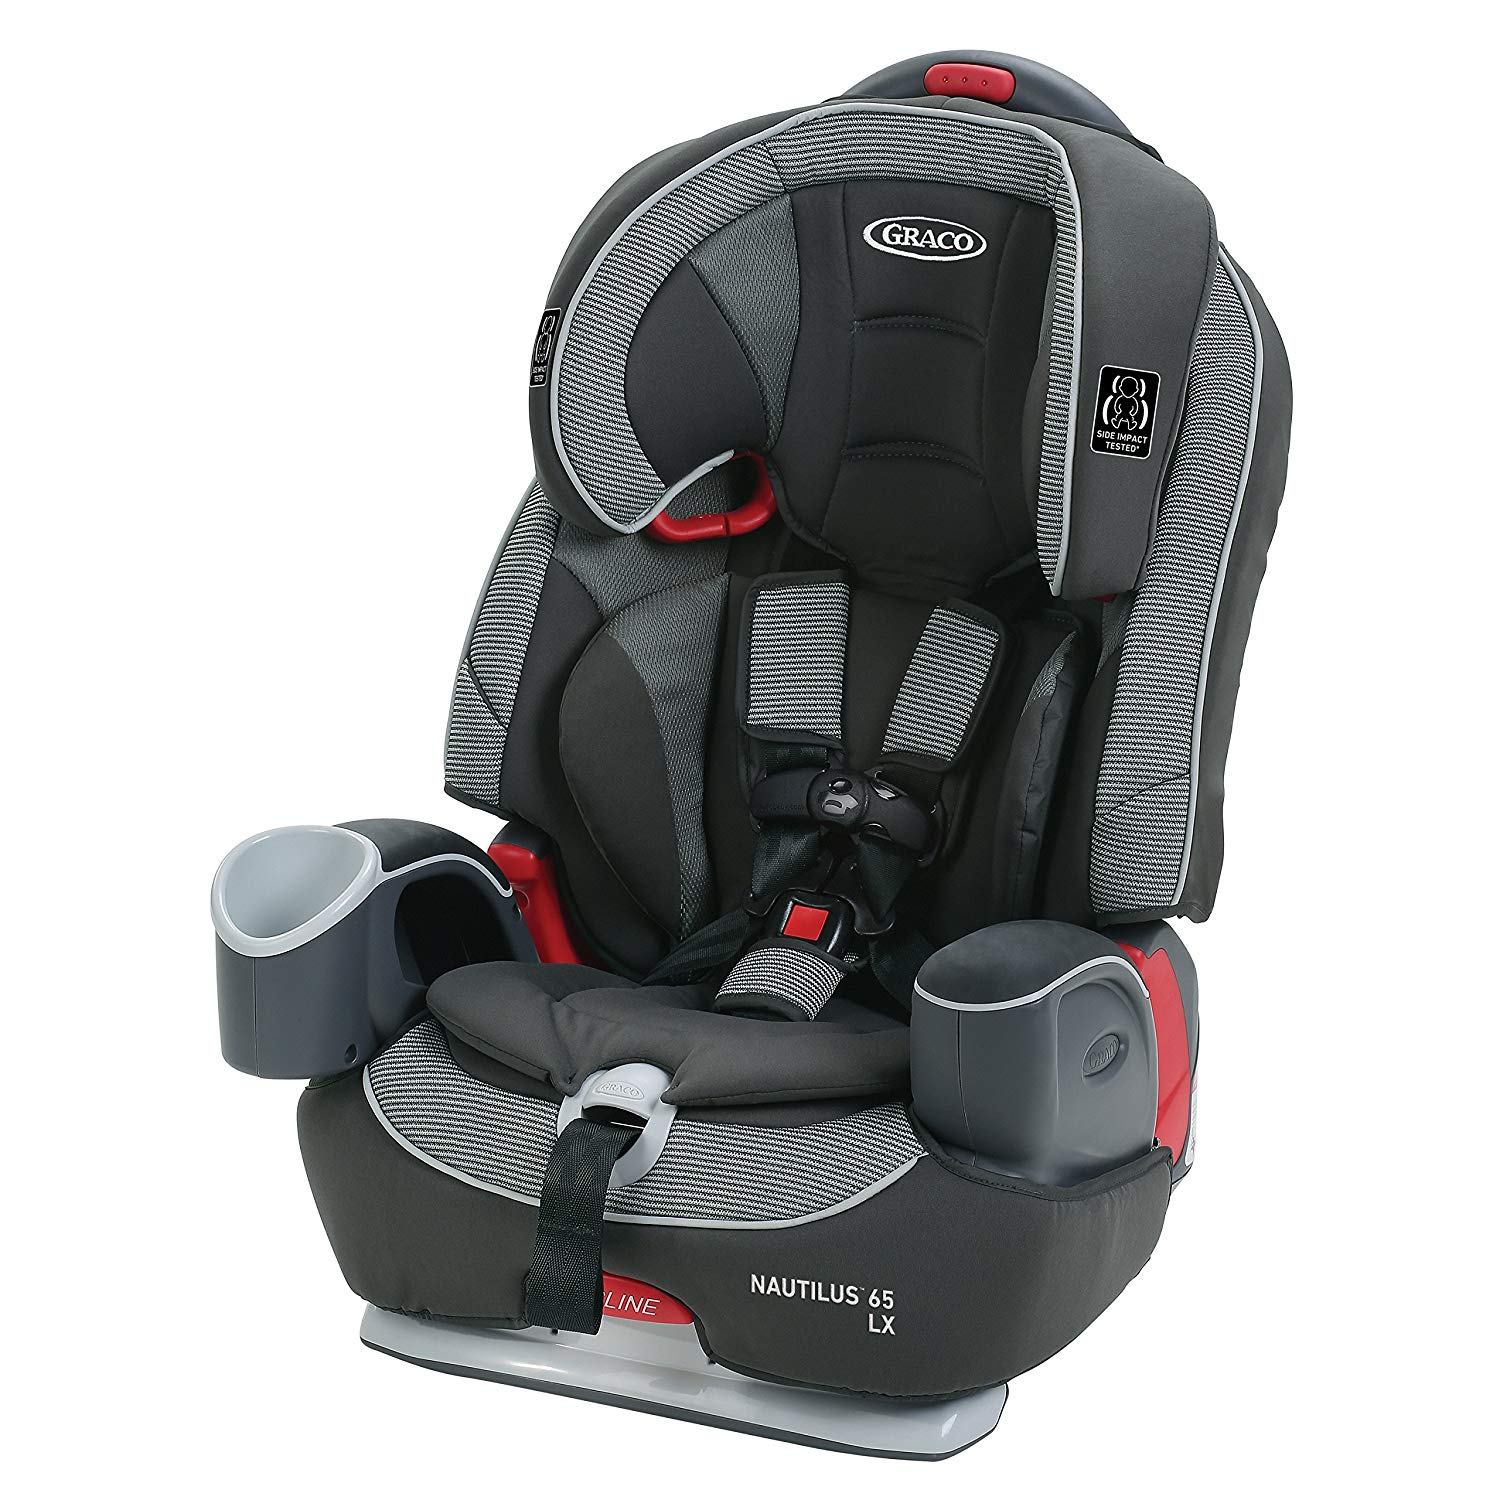 Swell Best 5 Point Harness Booster Car Seat In 2019 Ocoug Best Dining Table And Chair Ideas Images Ocougorg